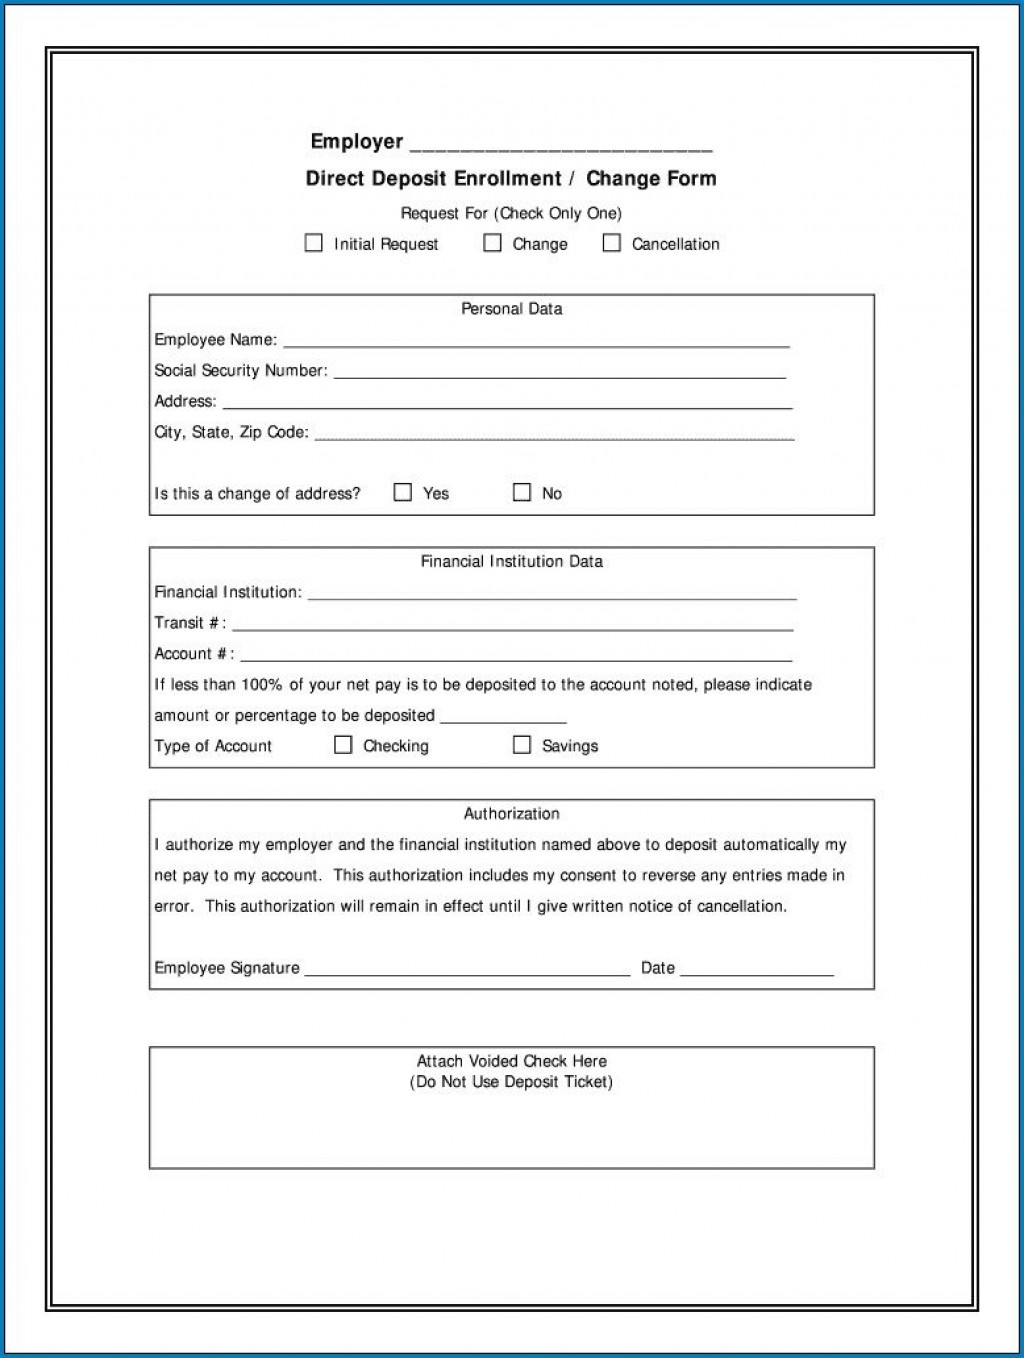 004 Stupendou Direct Deposit Form Template High Resolution  Multiple Account Ach AuthorizationLarge